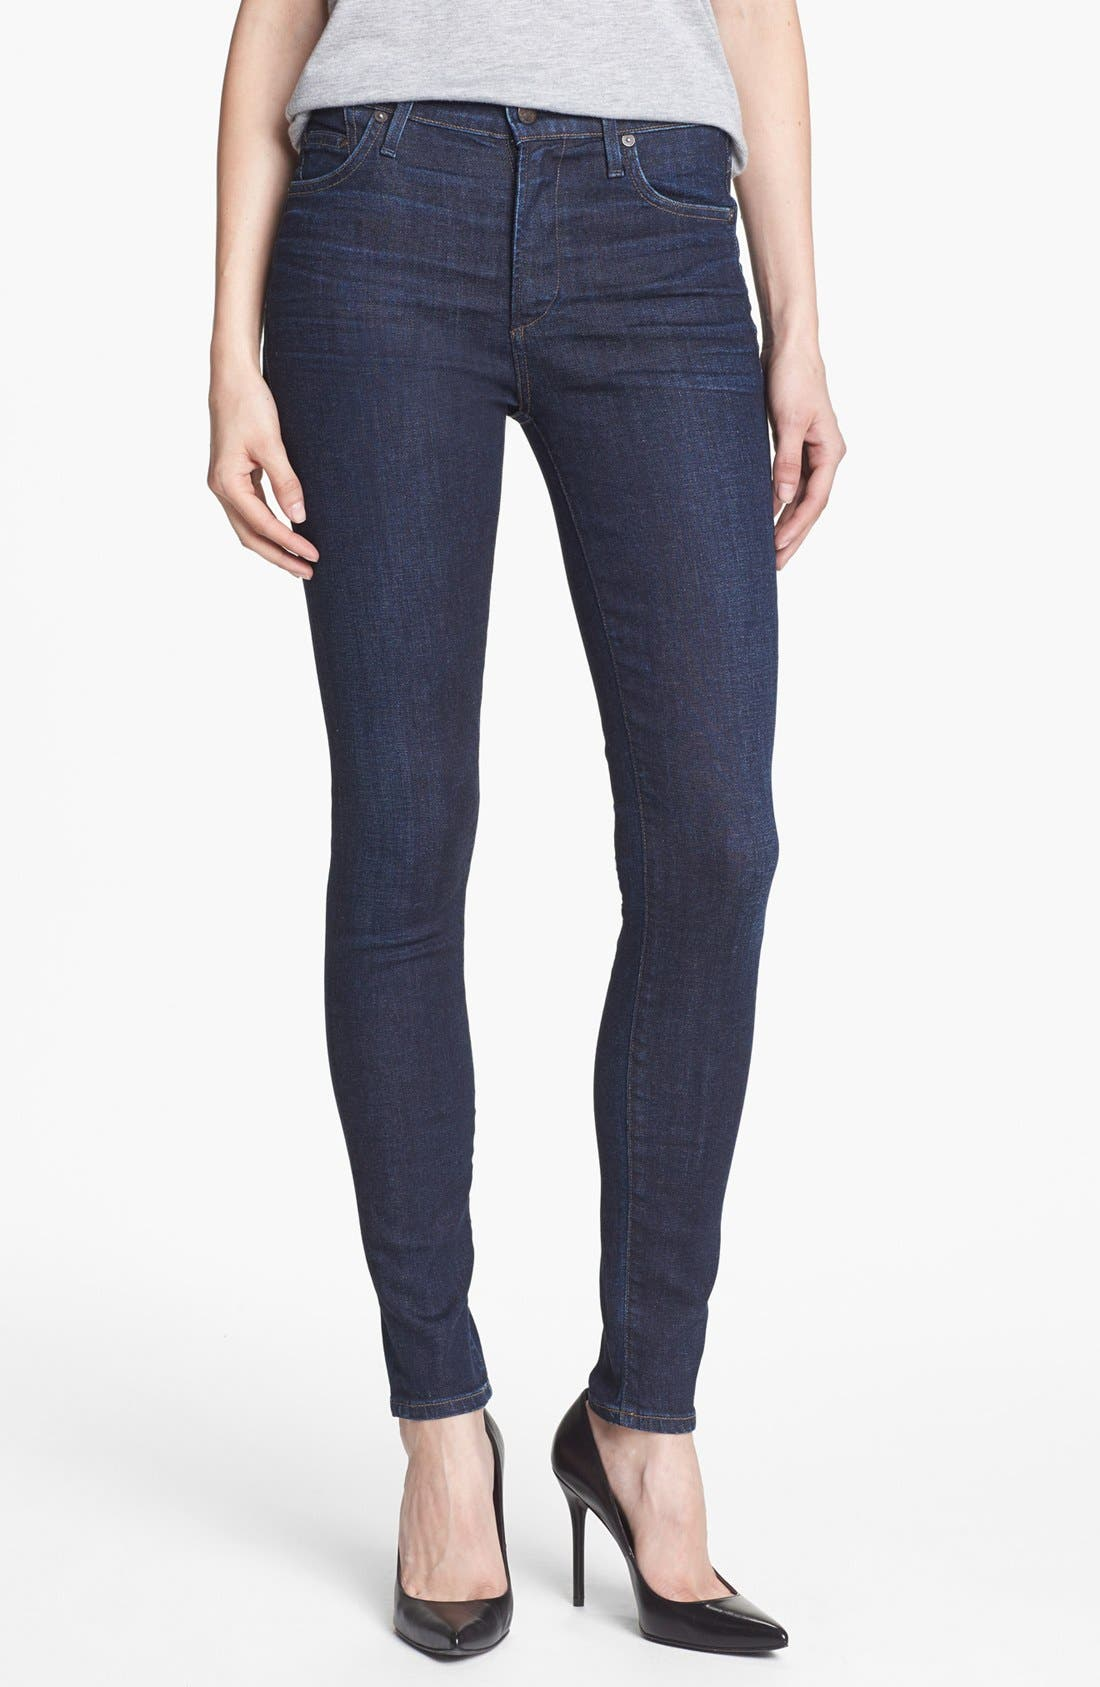 Main Image - Citizens of Humanity 'Rocket' High Rise Skinny Jeans (Icon)